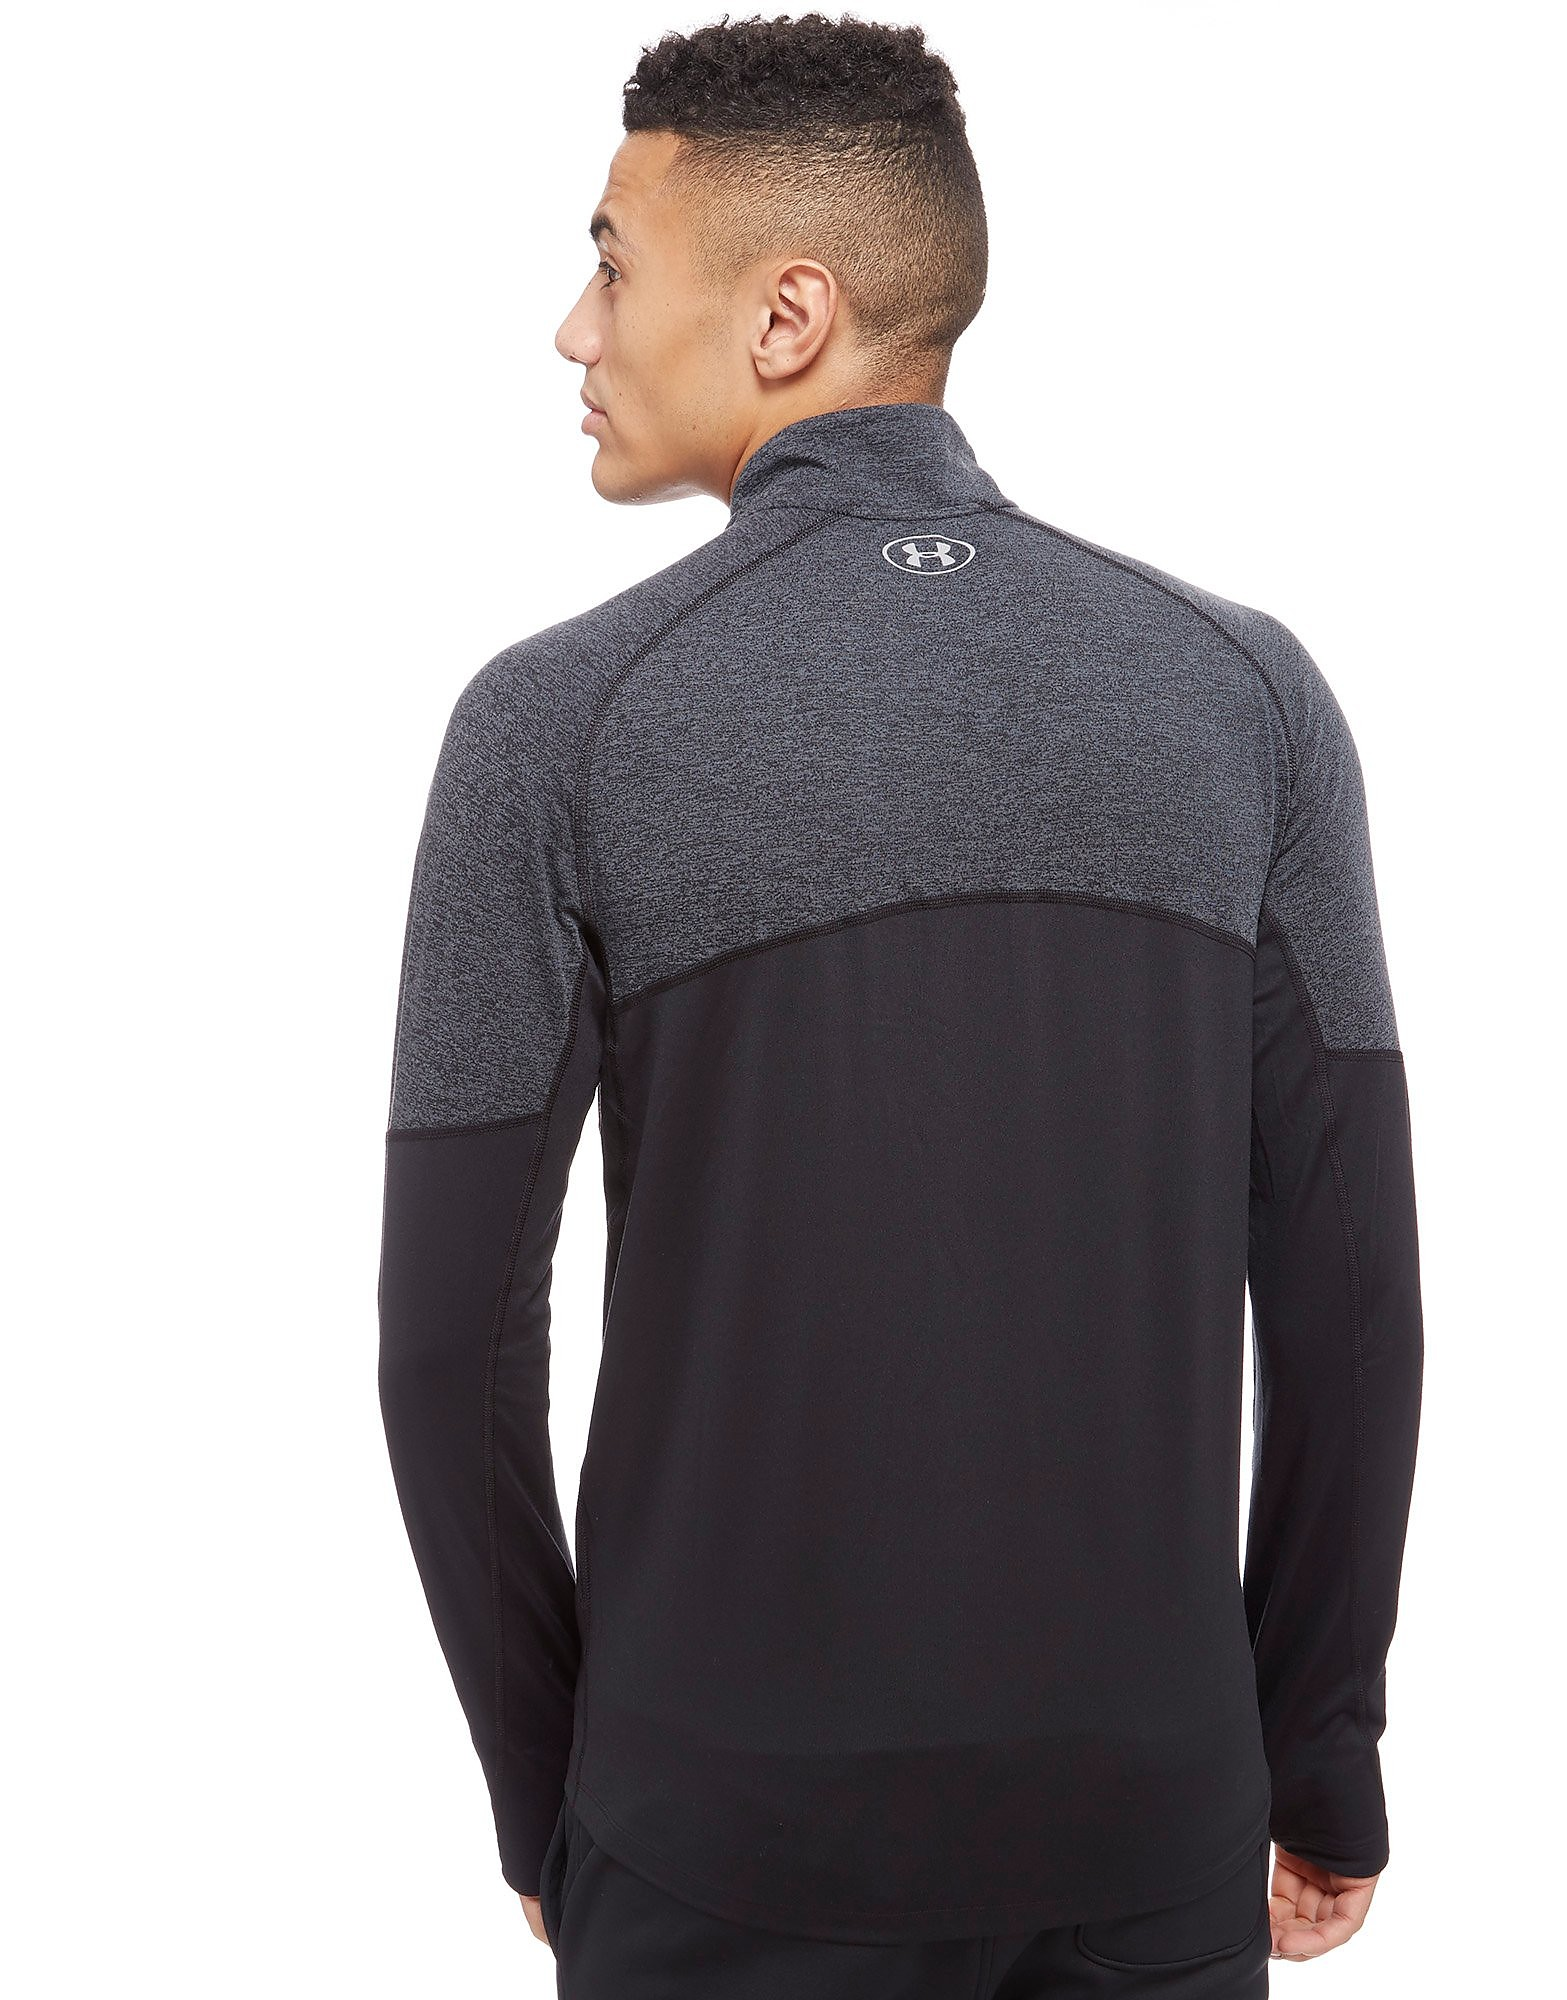 Under Armour Threadborne Streaker Run Tracksuit Top